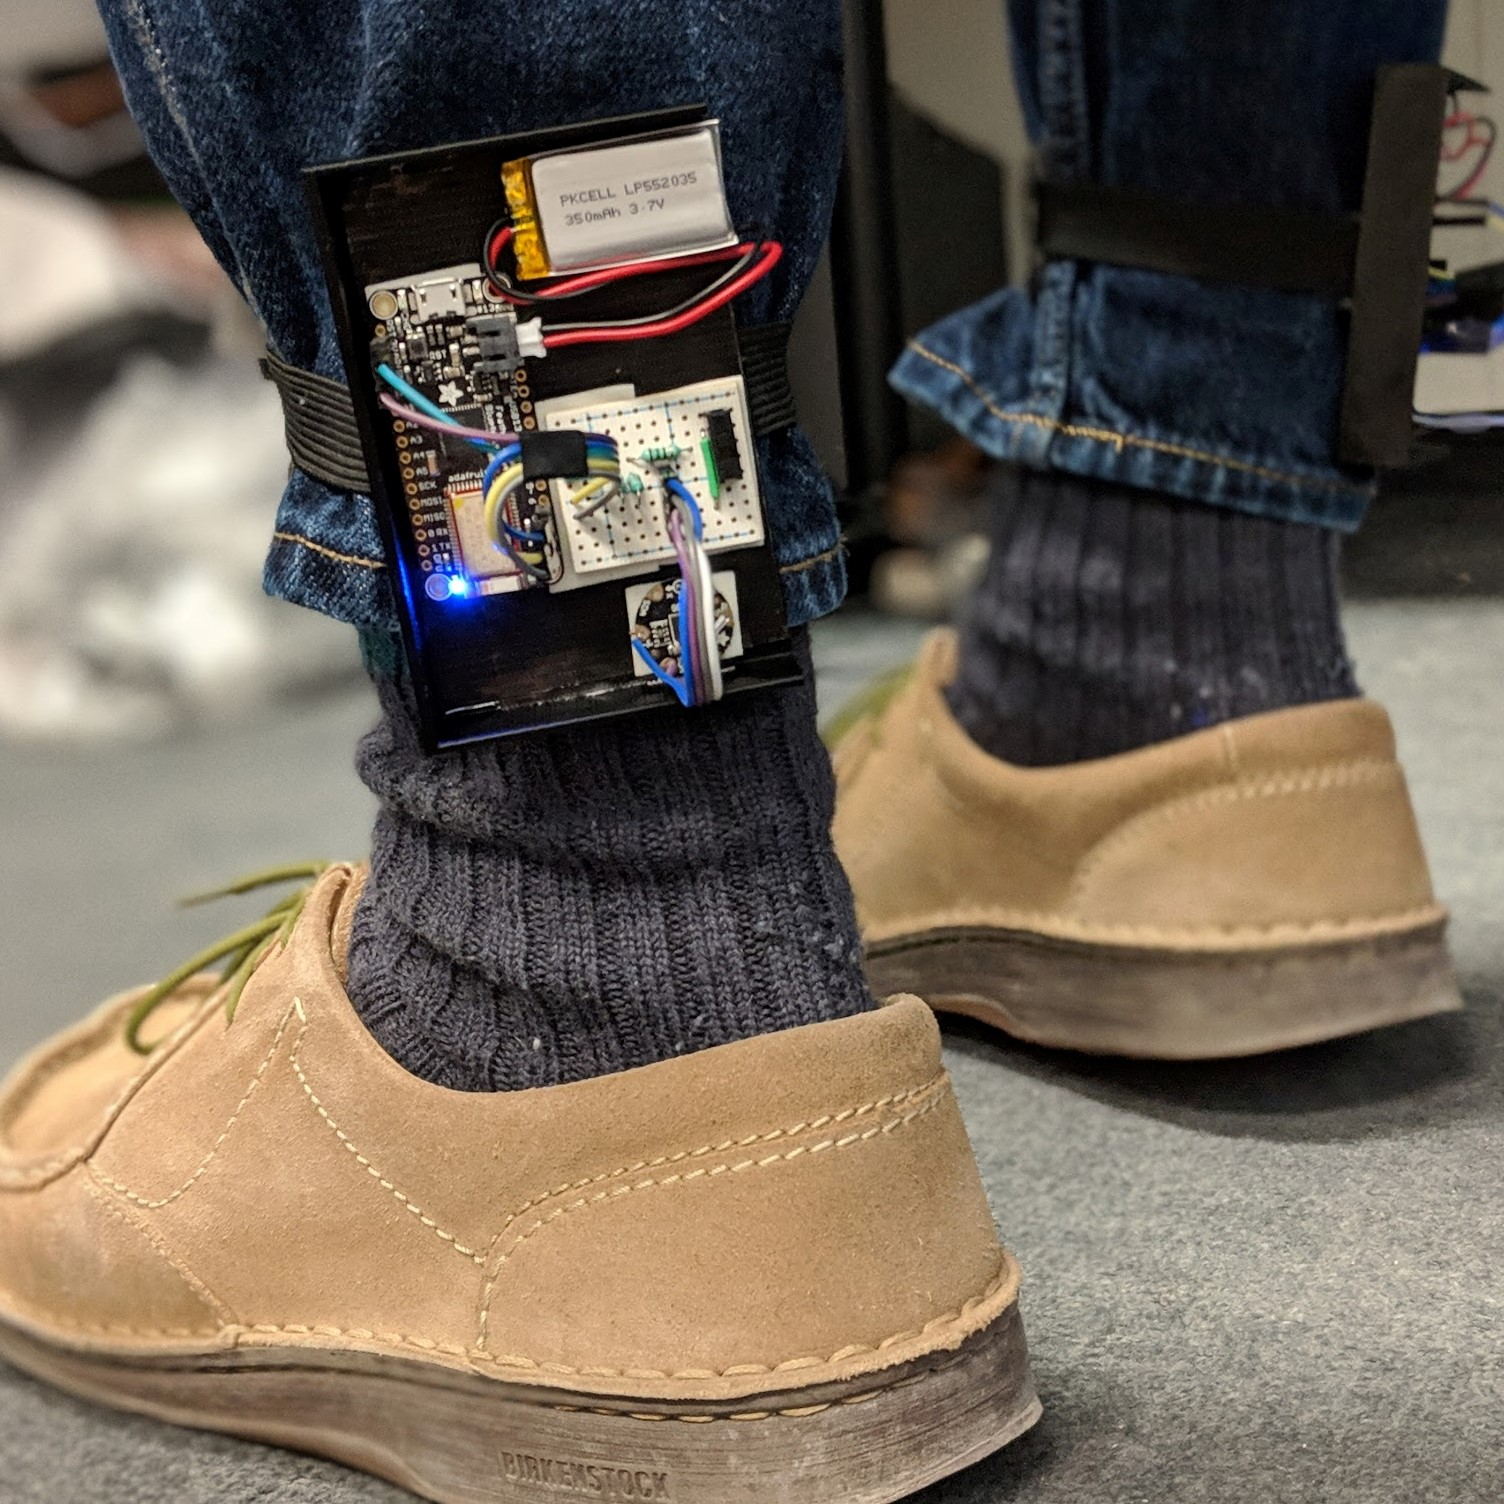 The VR-Bounce assembly strapped to an ankle.